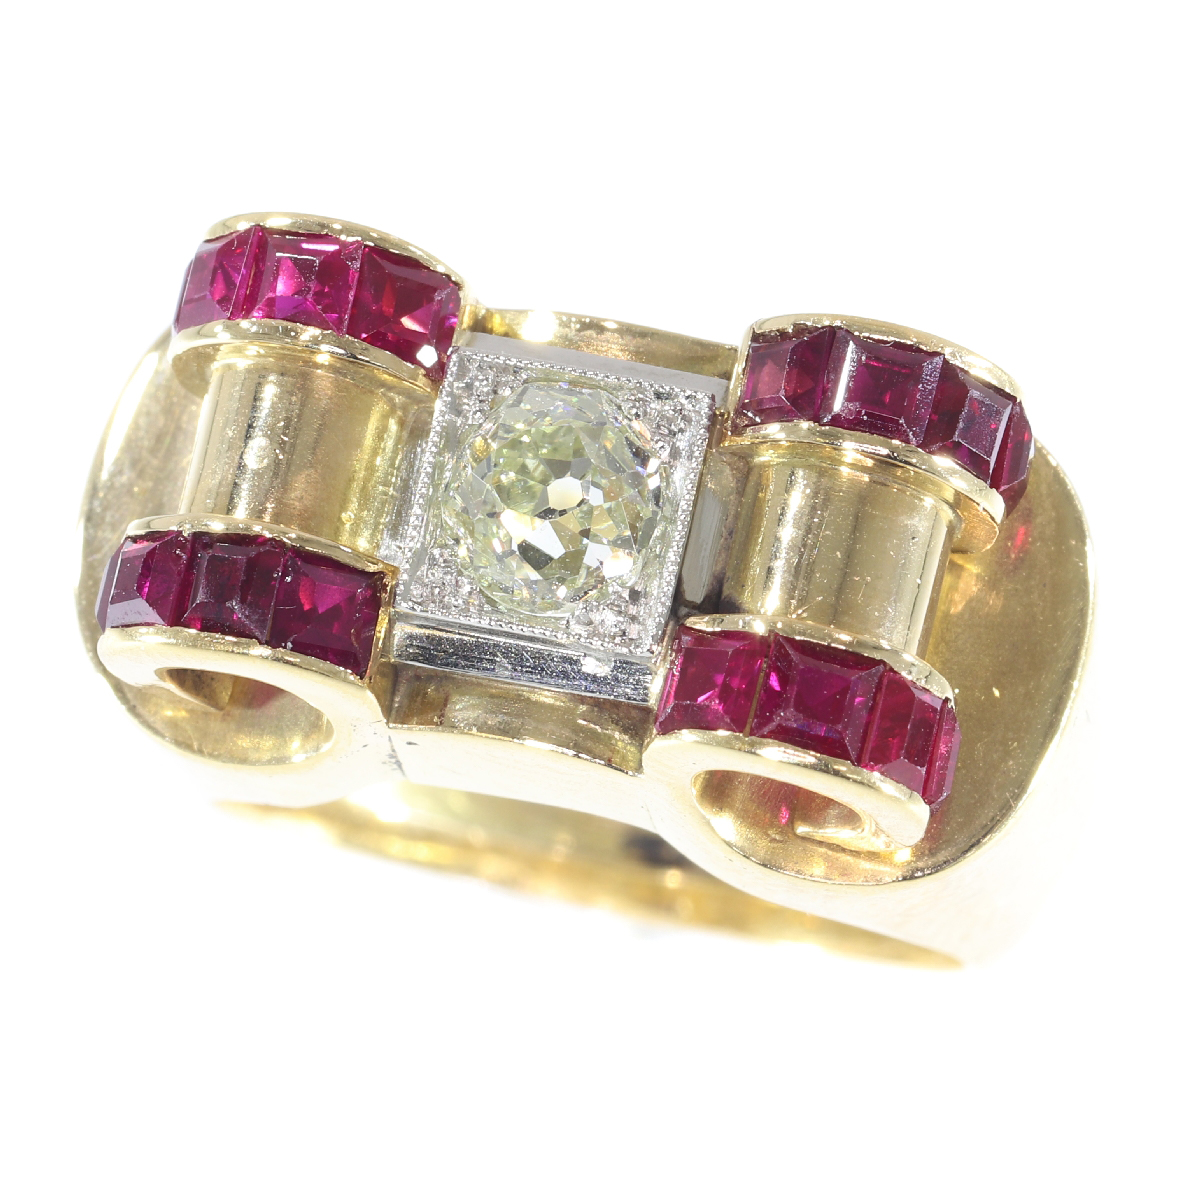 Impressive Retro ring with big old brilliant cut diamond and carre rubies